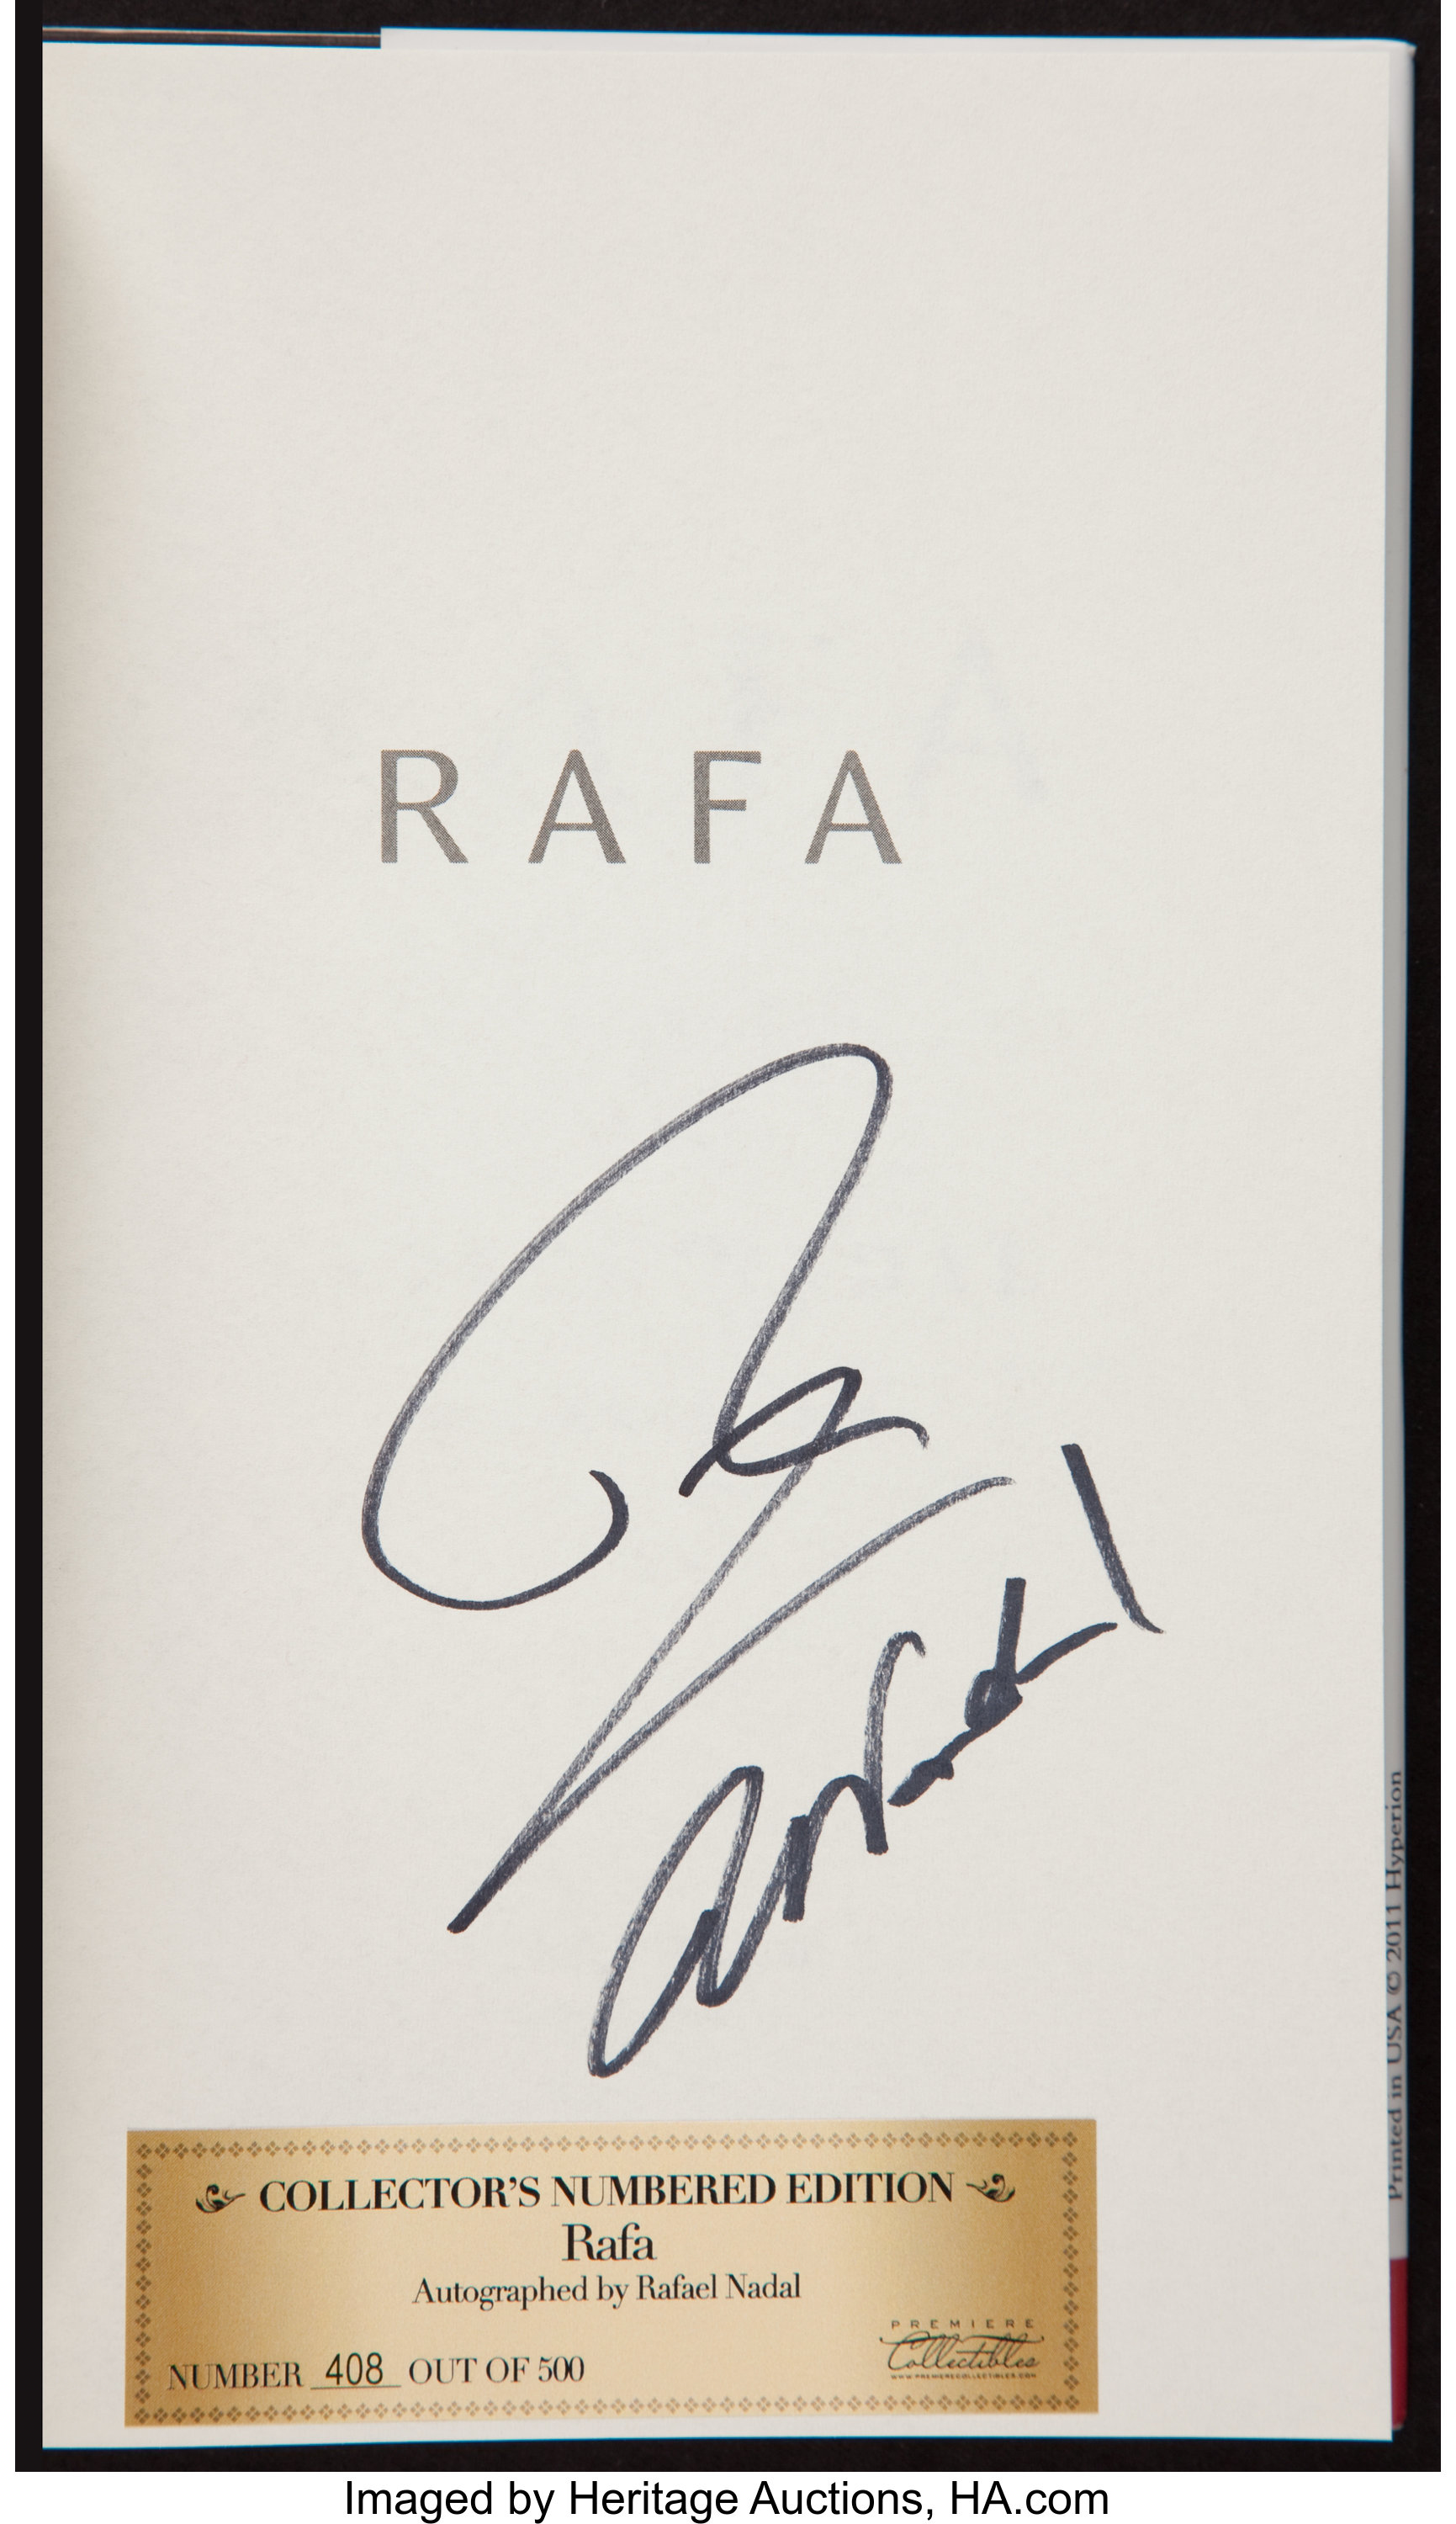 Rafael Nadal Signed Rafa Hardcover Book Miscellaneous Lot 40197 Heritage Auctions